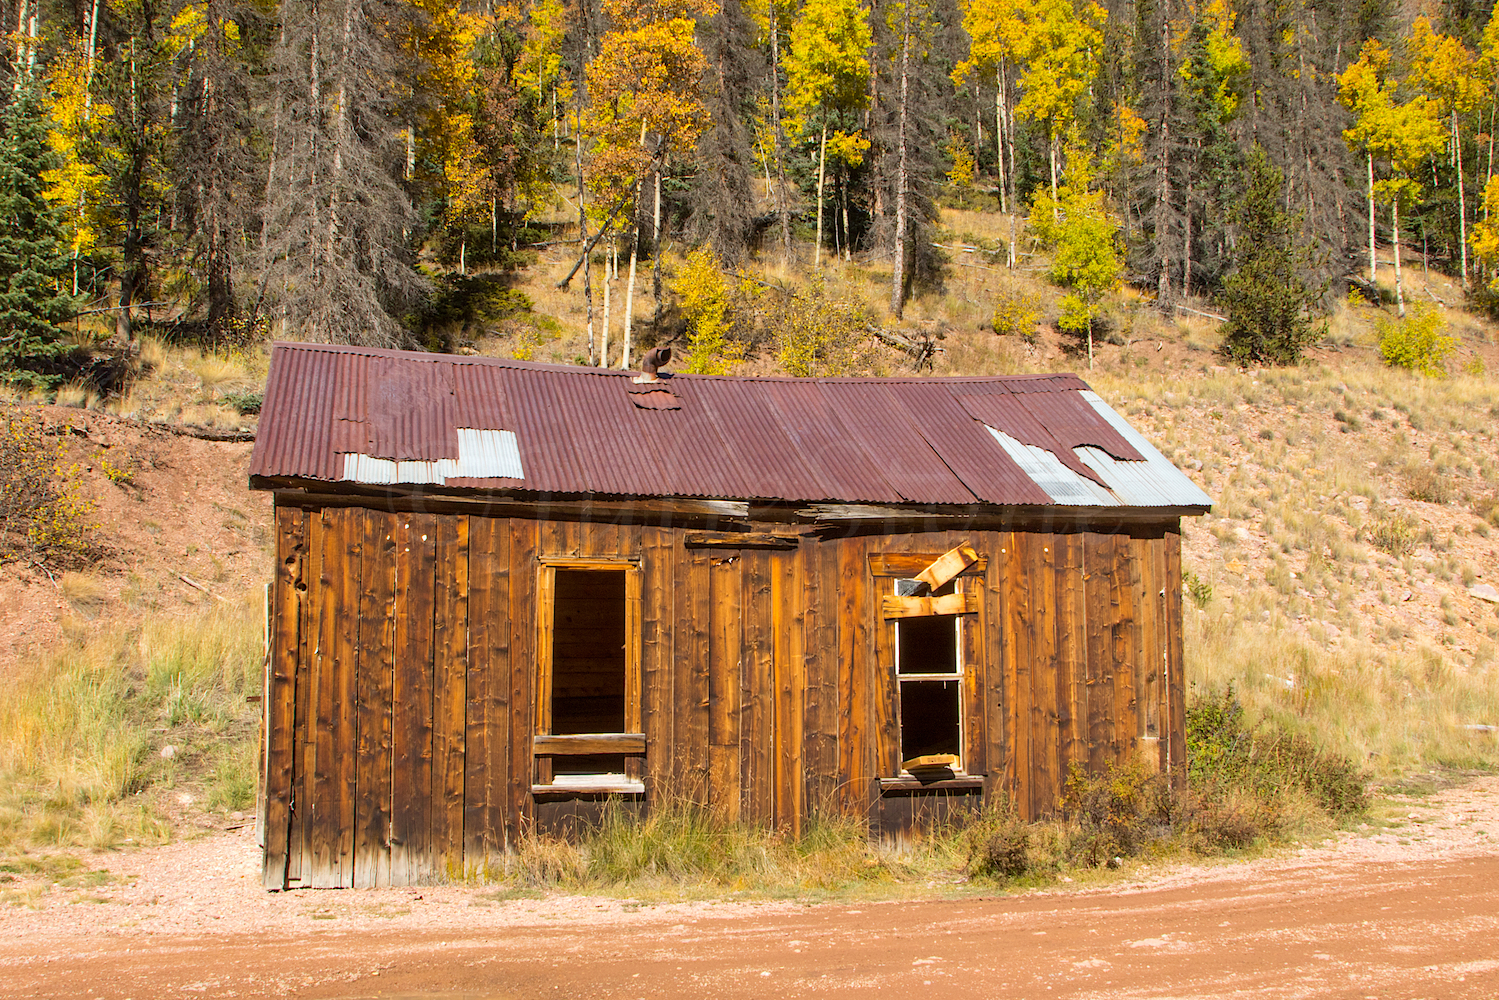 Building near Midwest Mine, Image # 3490